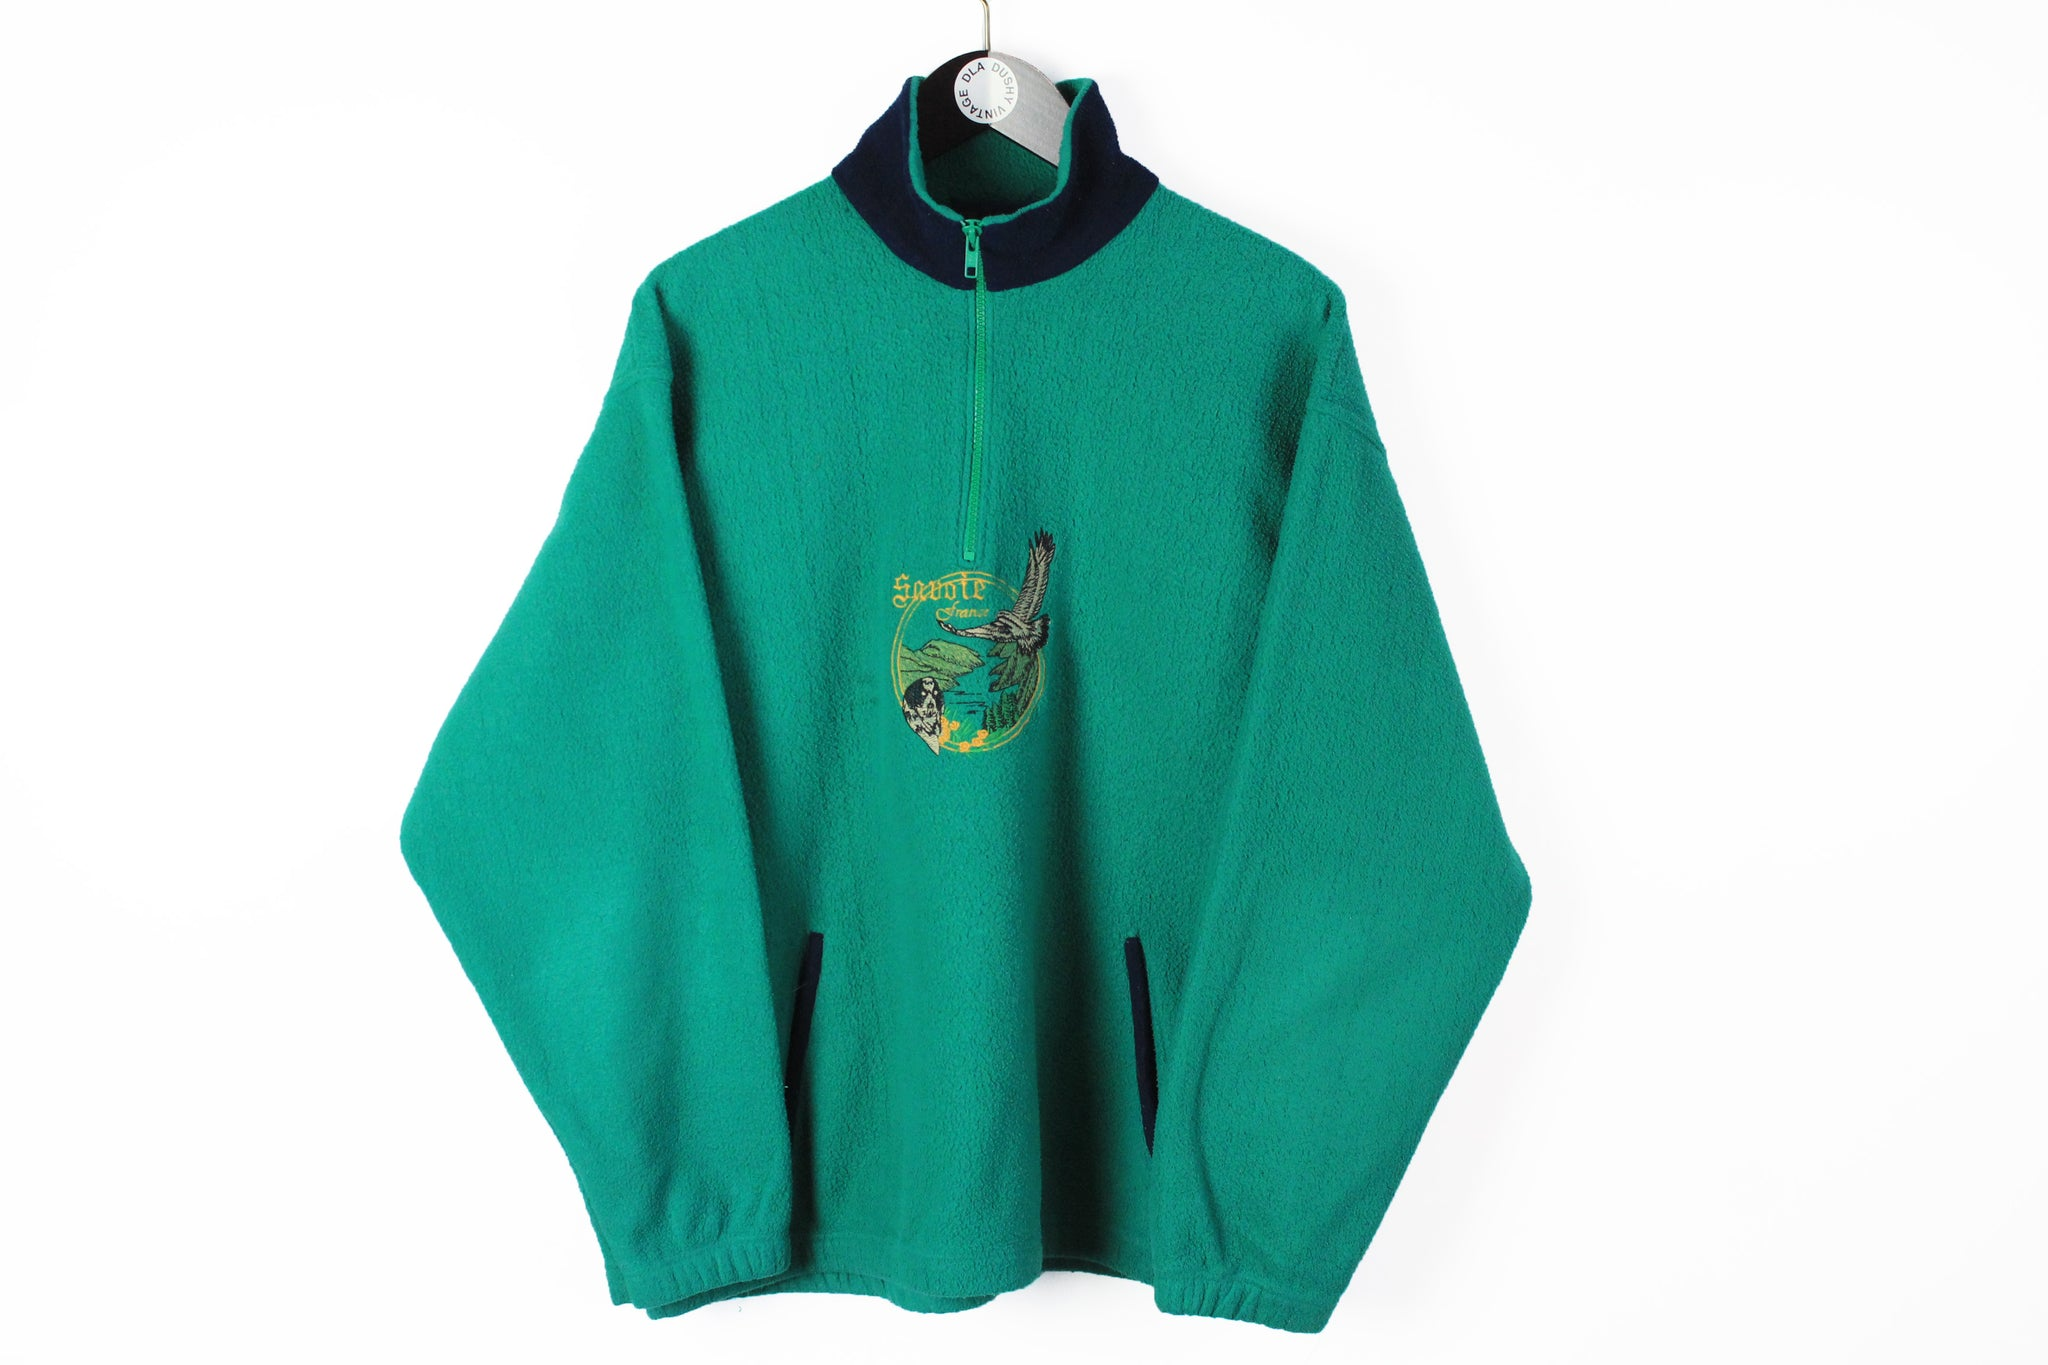 Vintage Fleece Half Zip Medium green big logo embroidery france animal pattern nature sweater